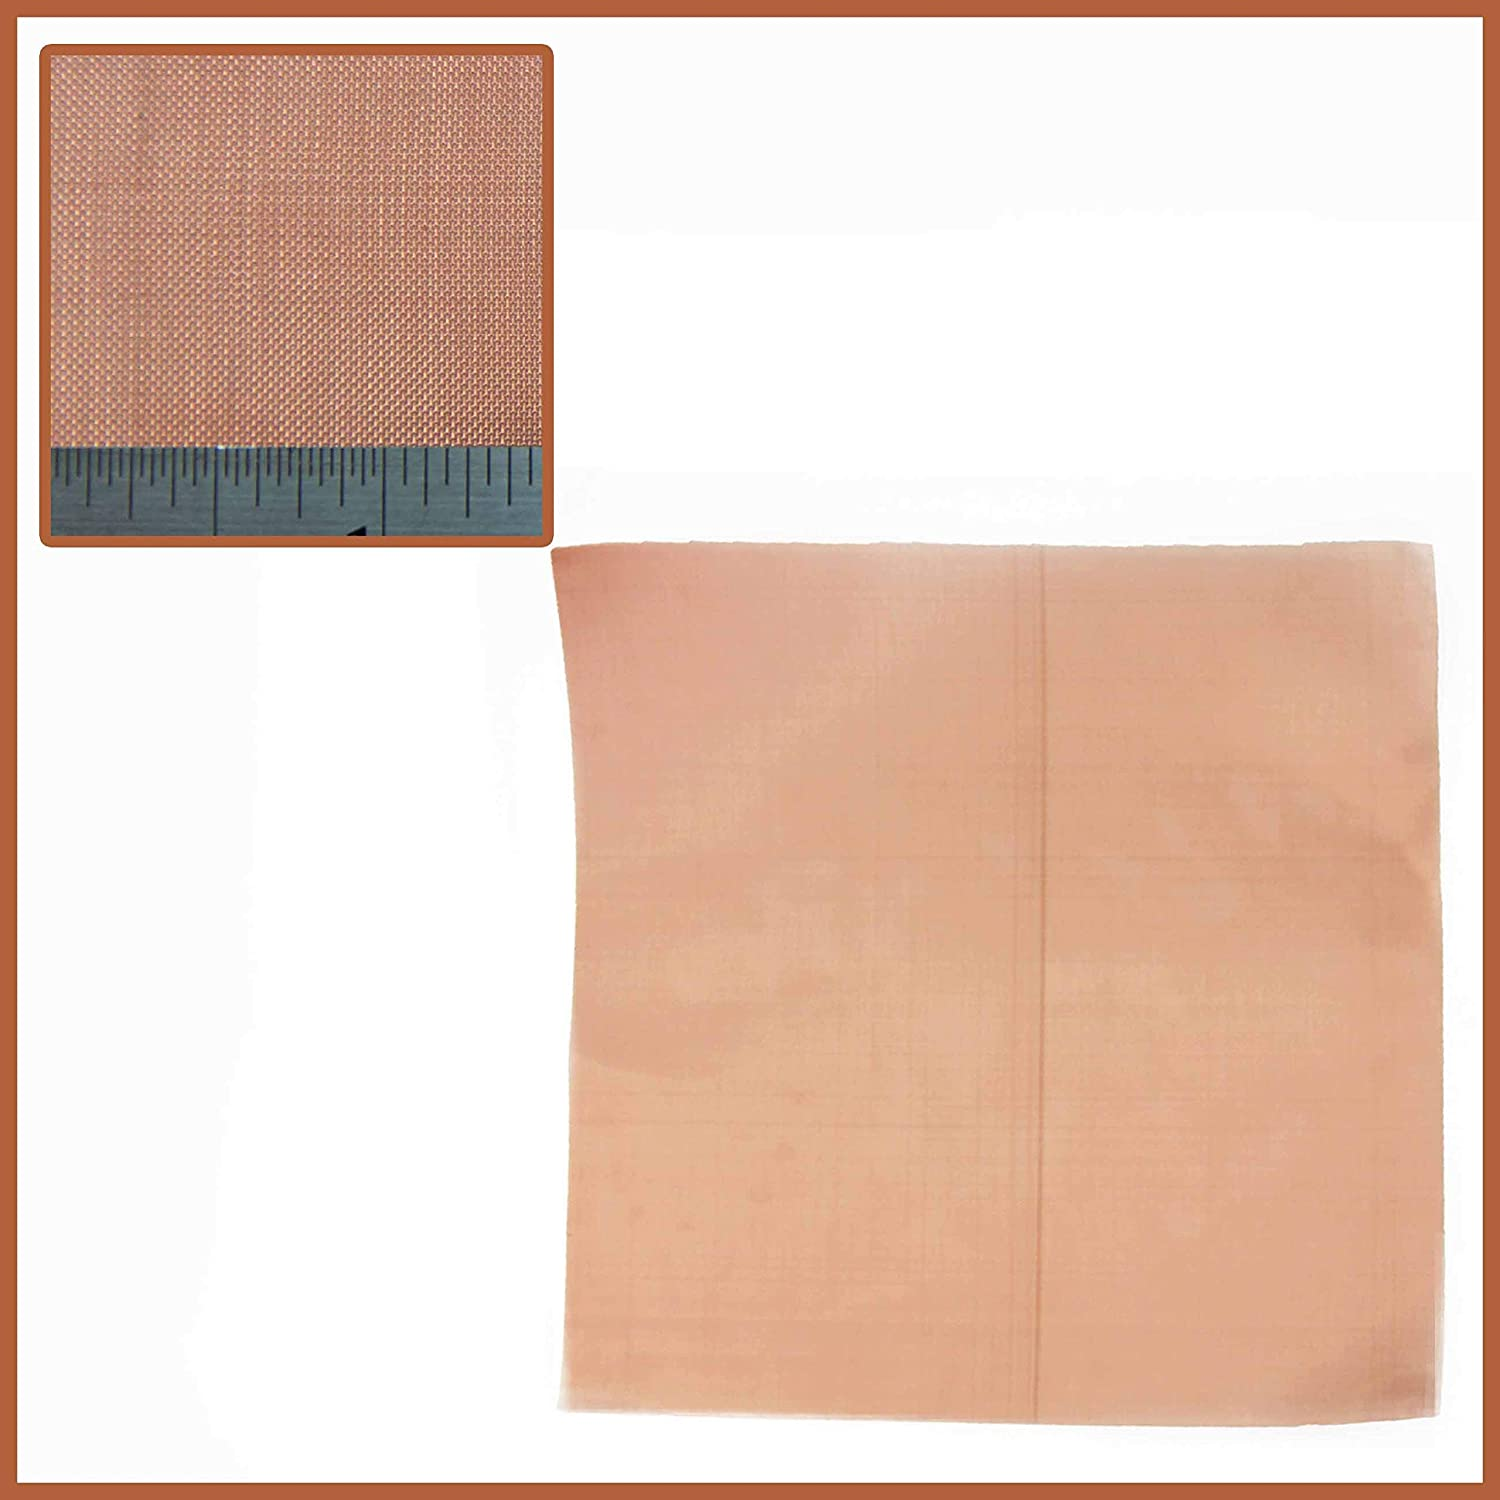 Fine - #60 x 0.16mm (60 Holes Per Linear Inch) - Pure Copper Woven Mesh by THE MESH COMPANY - 300 x 300mm Sheet